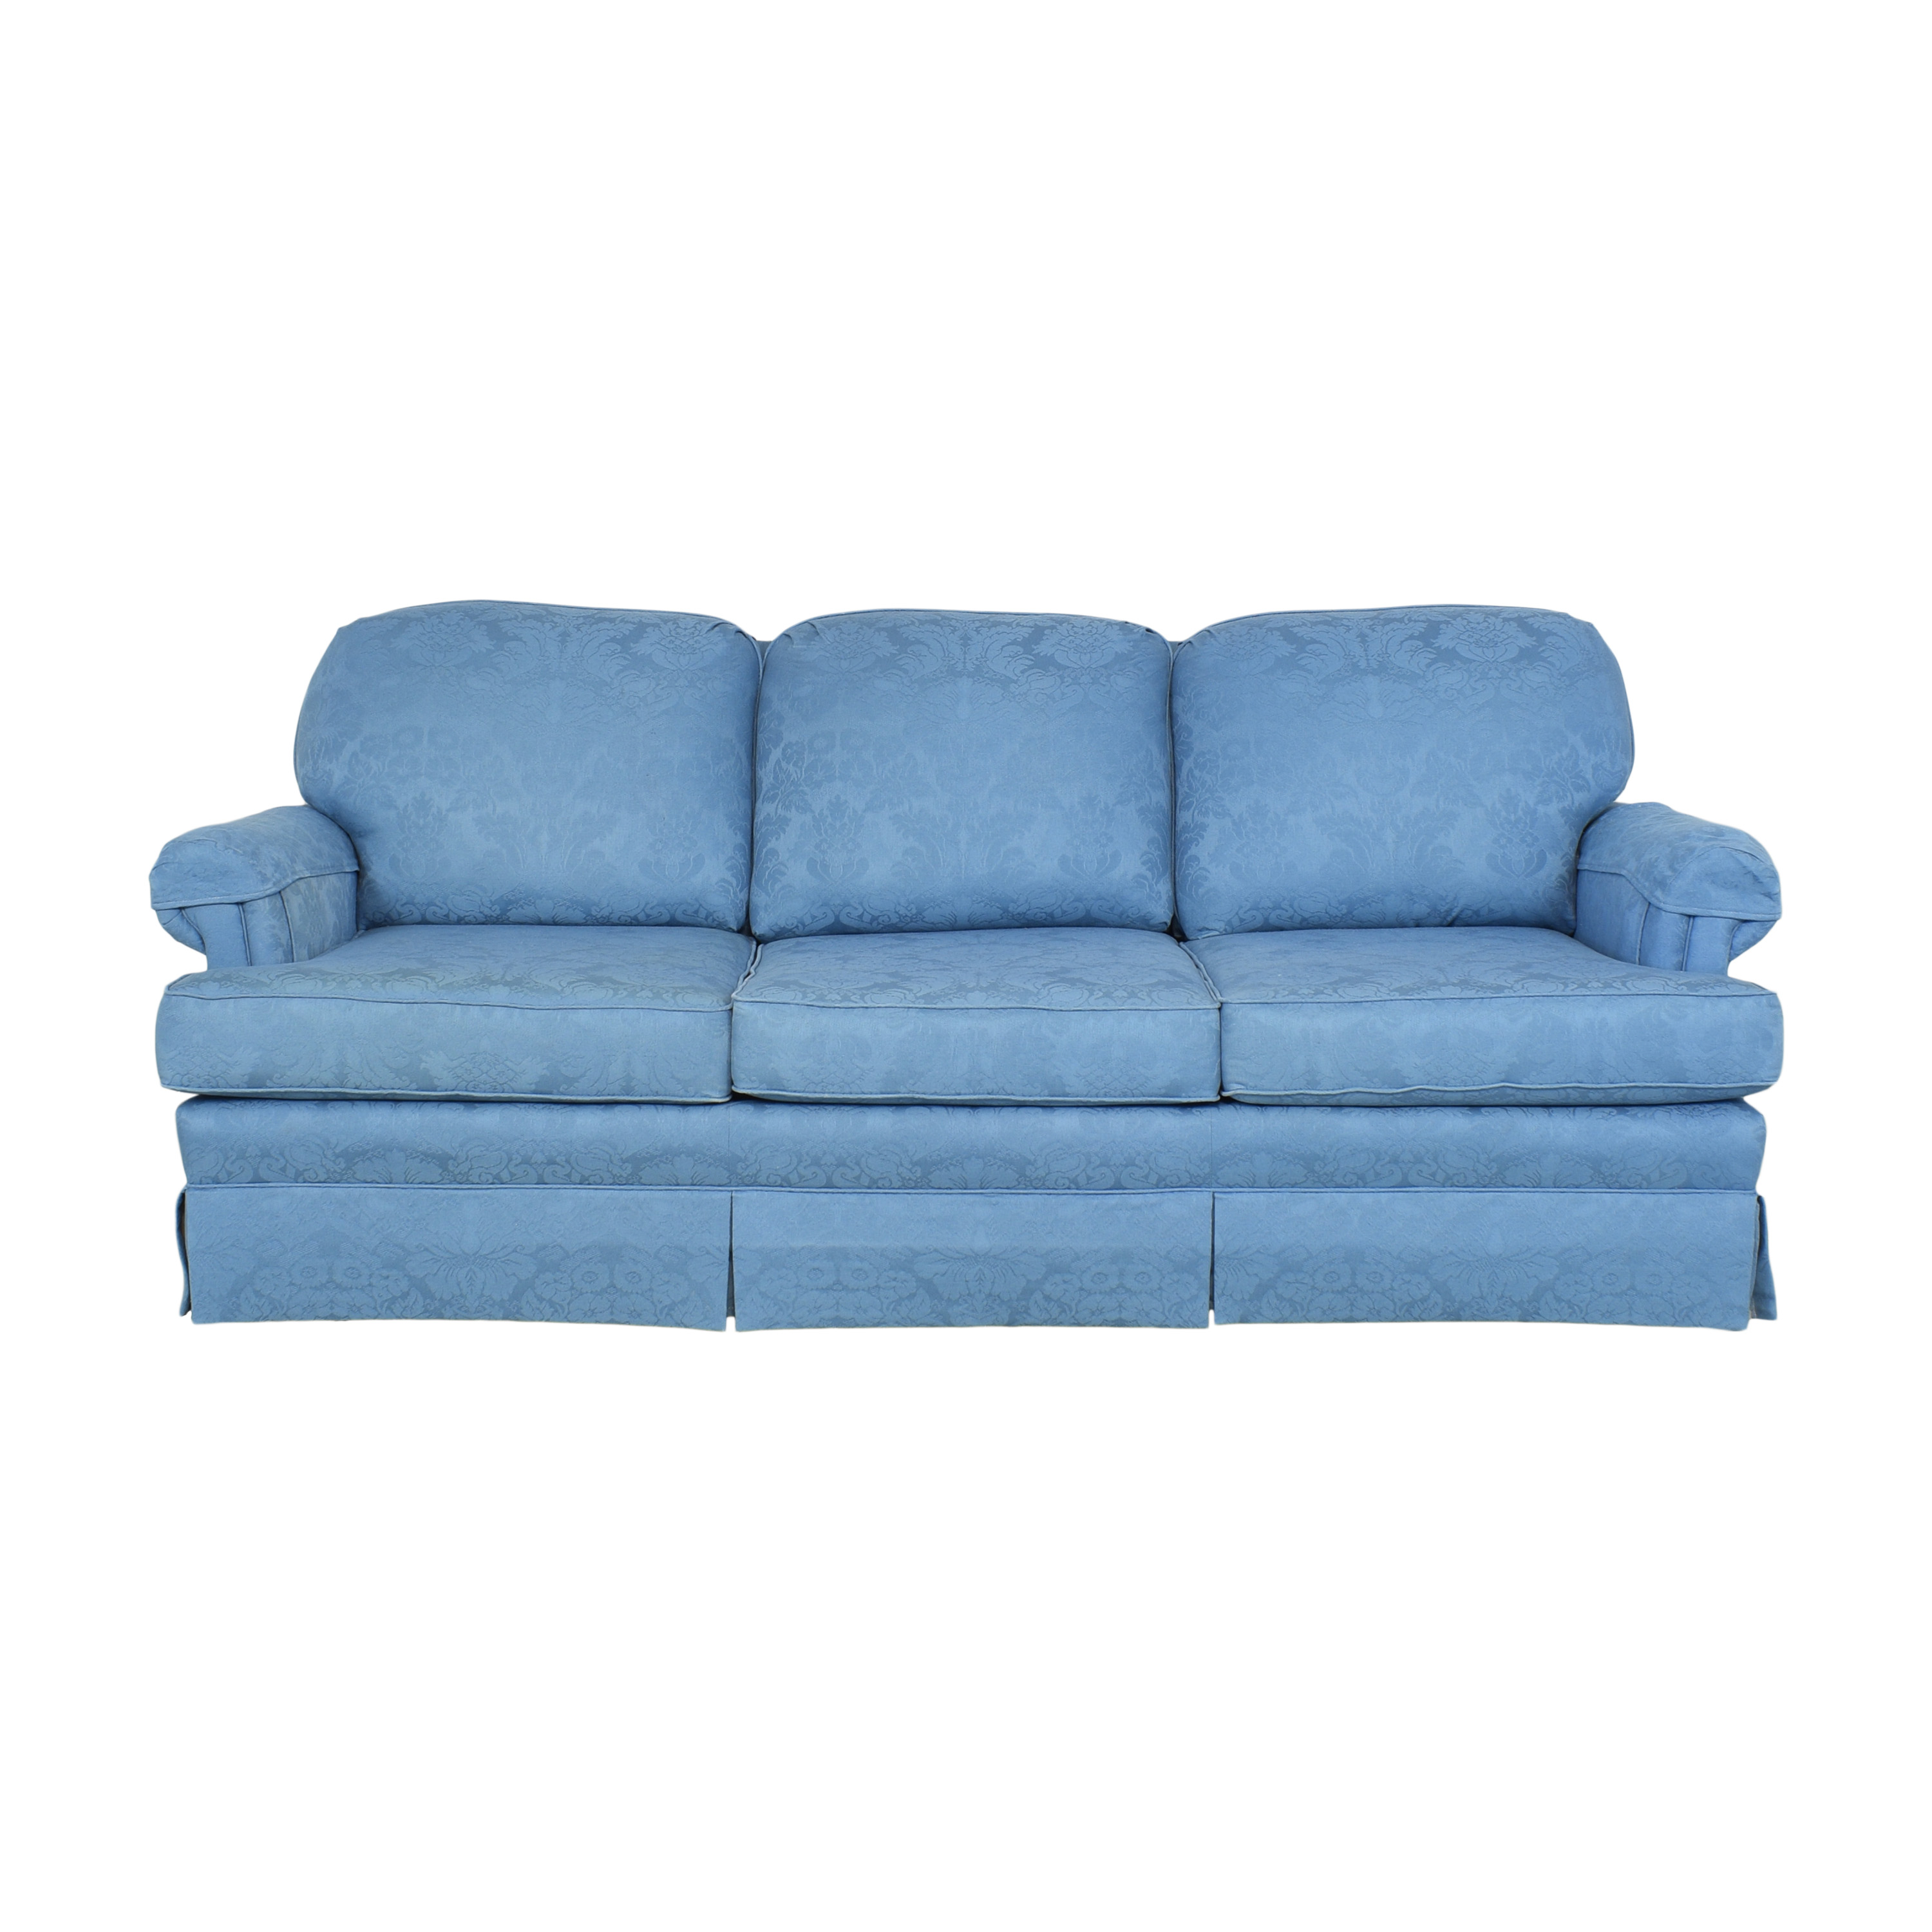 Norwalk Furniture Norwalk Three Cushion Sofa blue